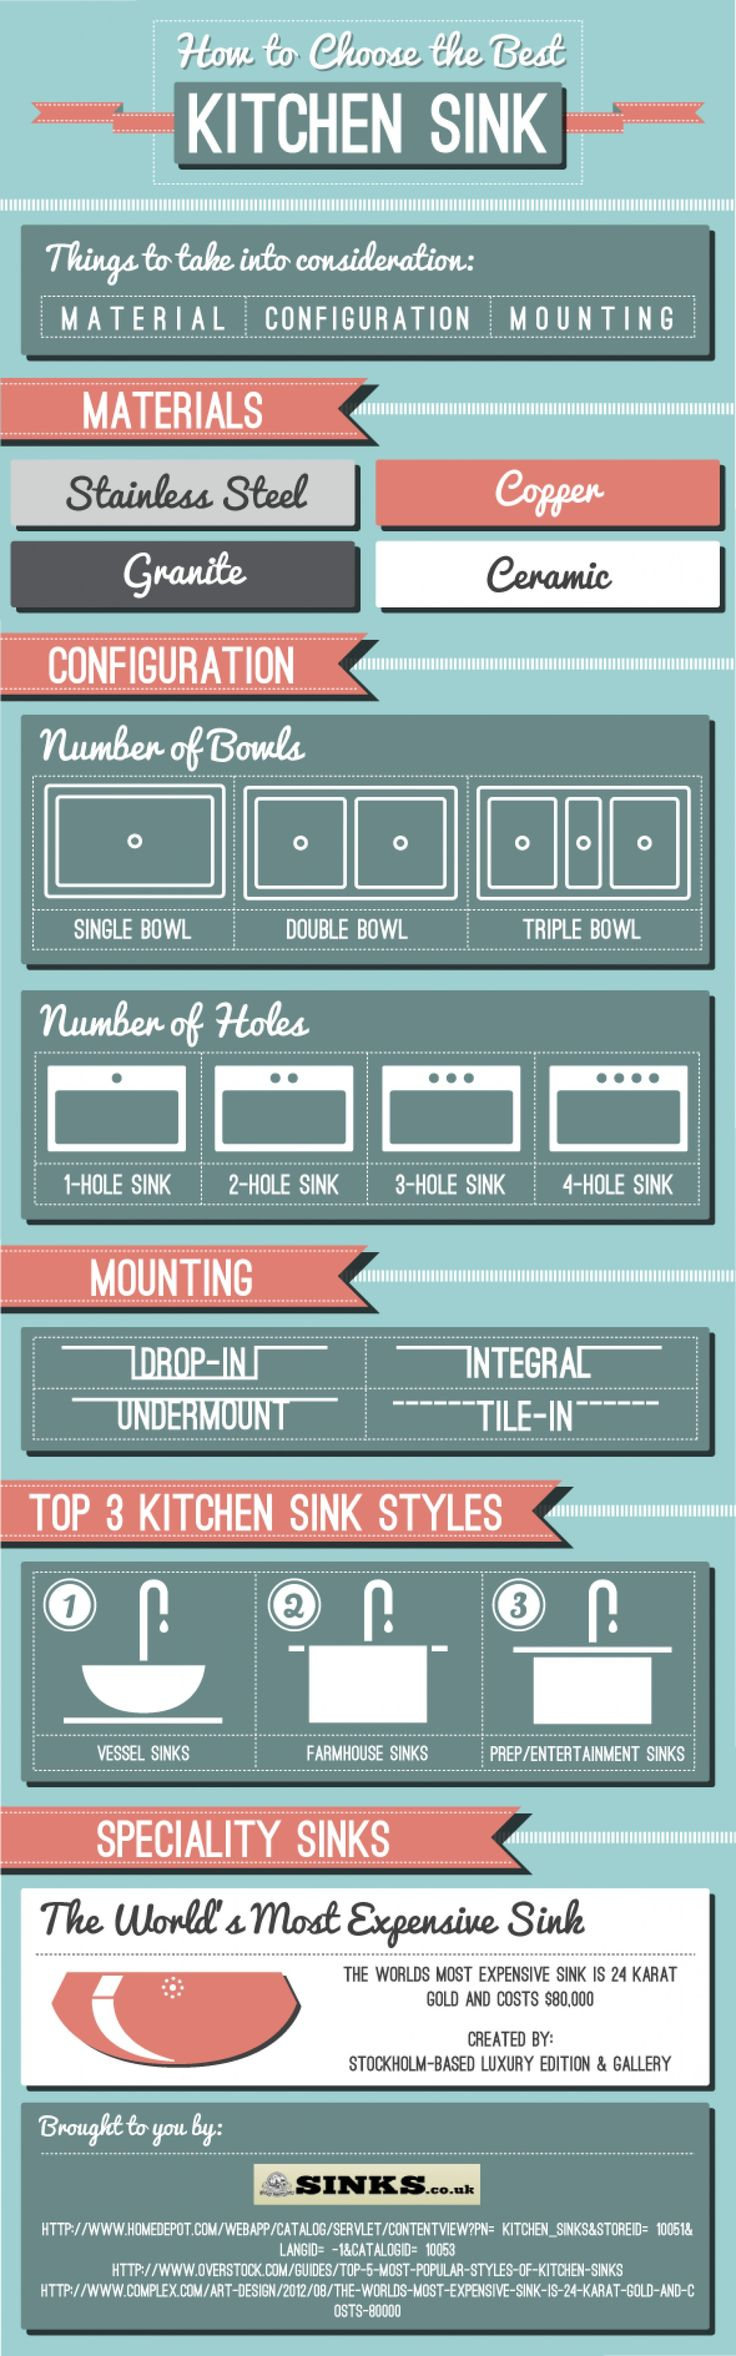 16 best Everything but the kitchen sink! images on Pinterest ...